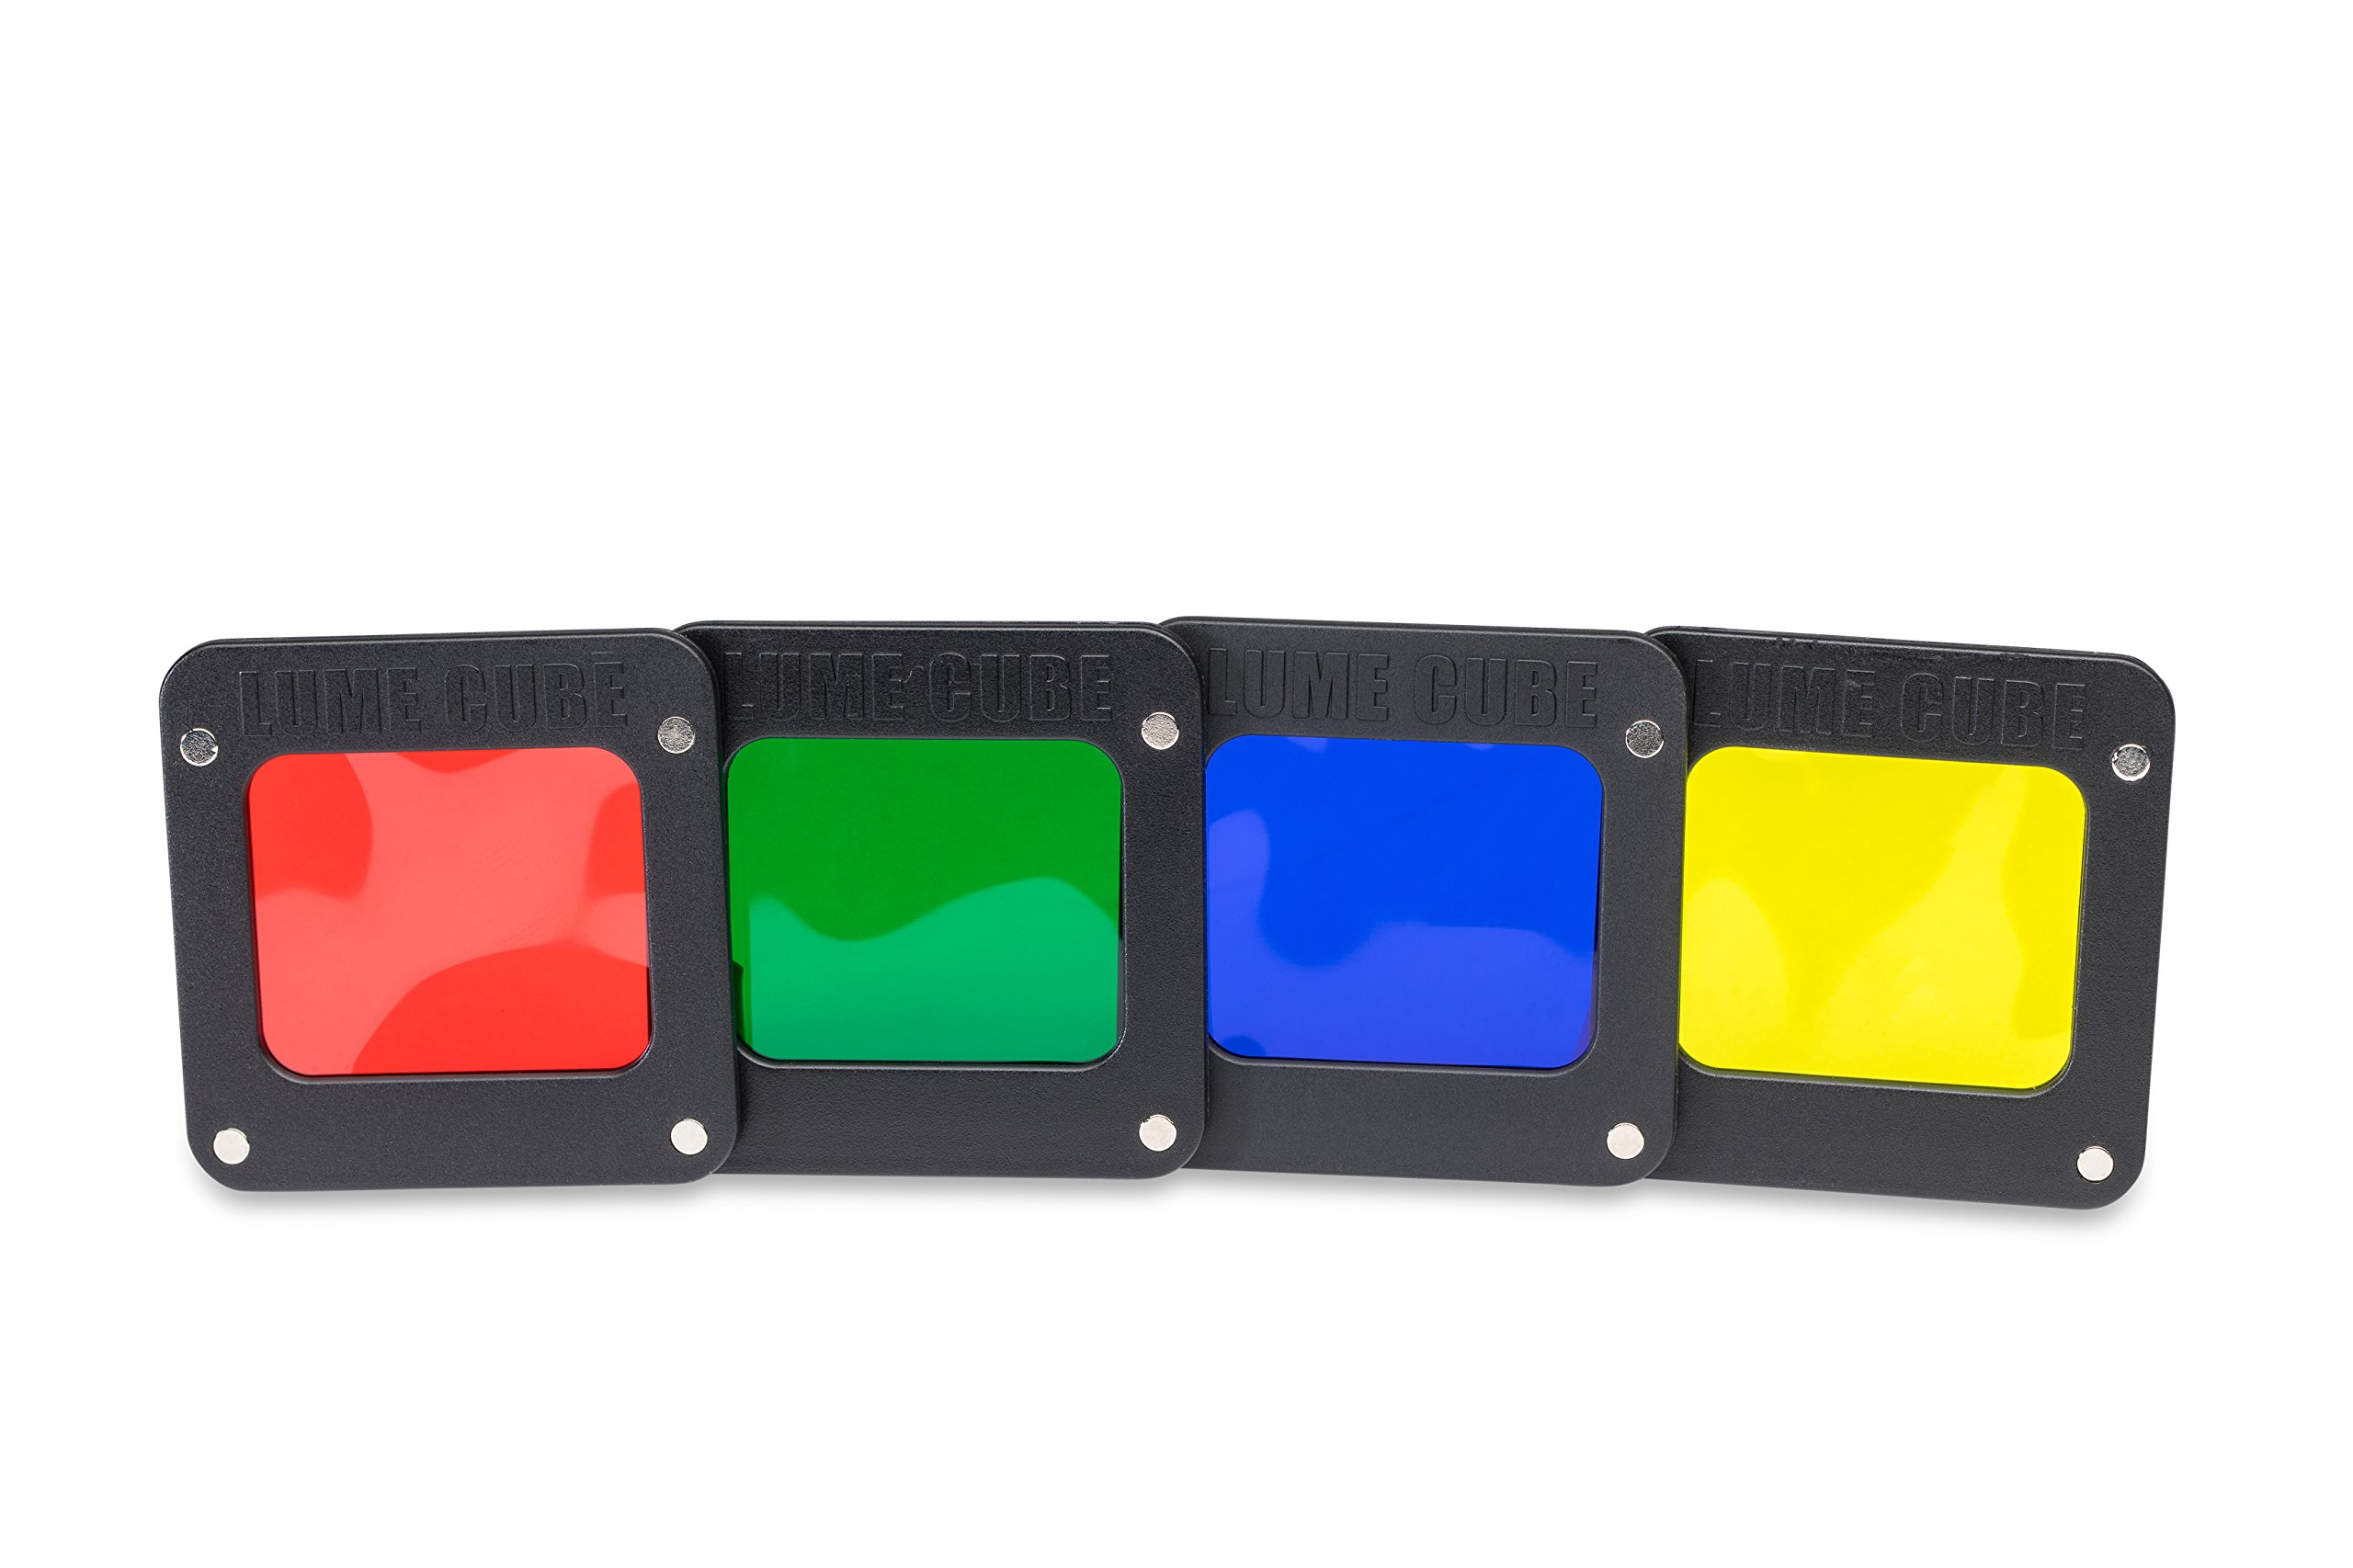 Lume Cube - RBGY Color Gels for Light-House (includes one Red, Blue, Green and Yellow Magnetic Gel) by LUME CUBE